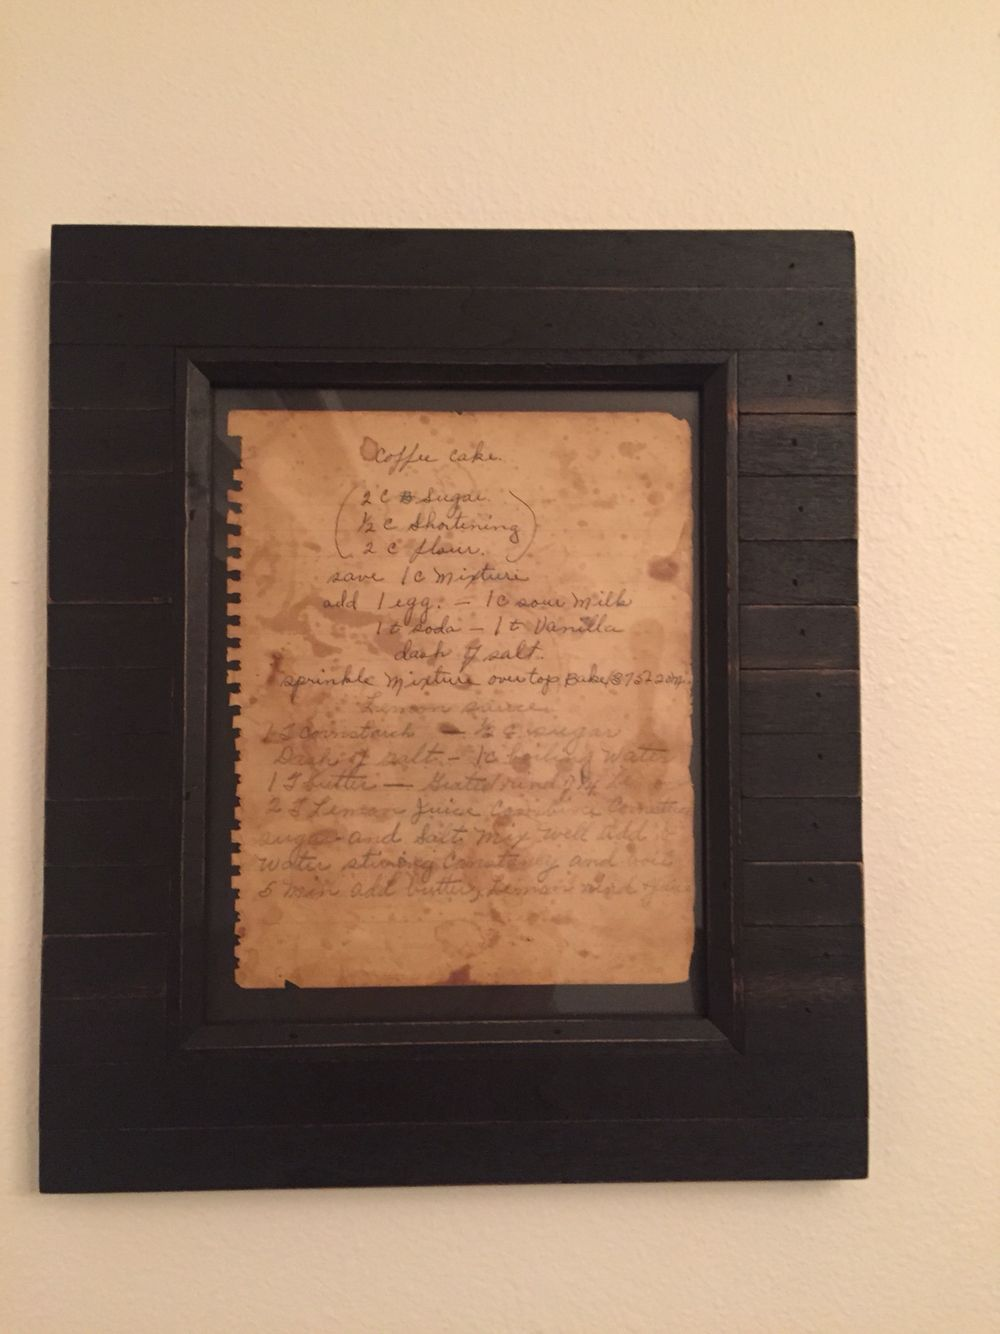 Great grandmas framed family recipe for the dining room wall